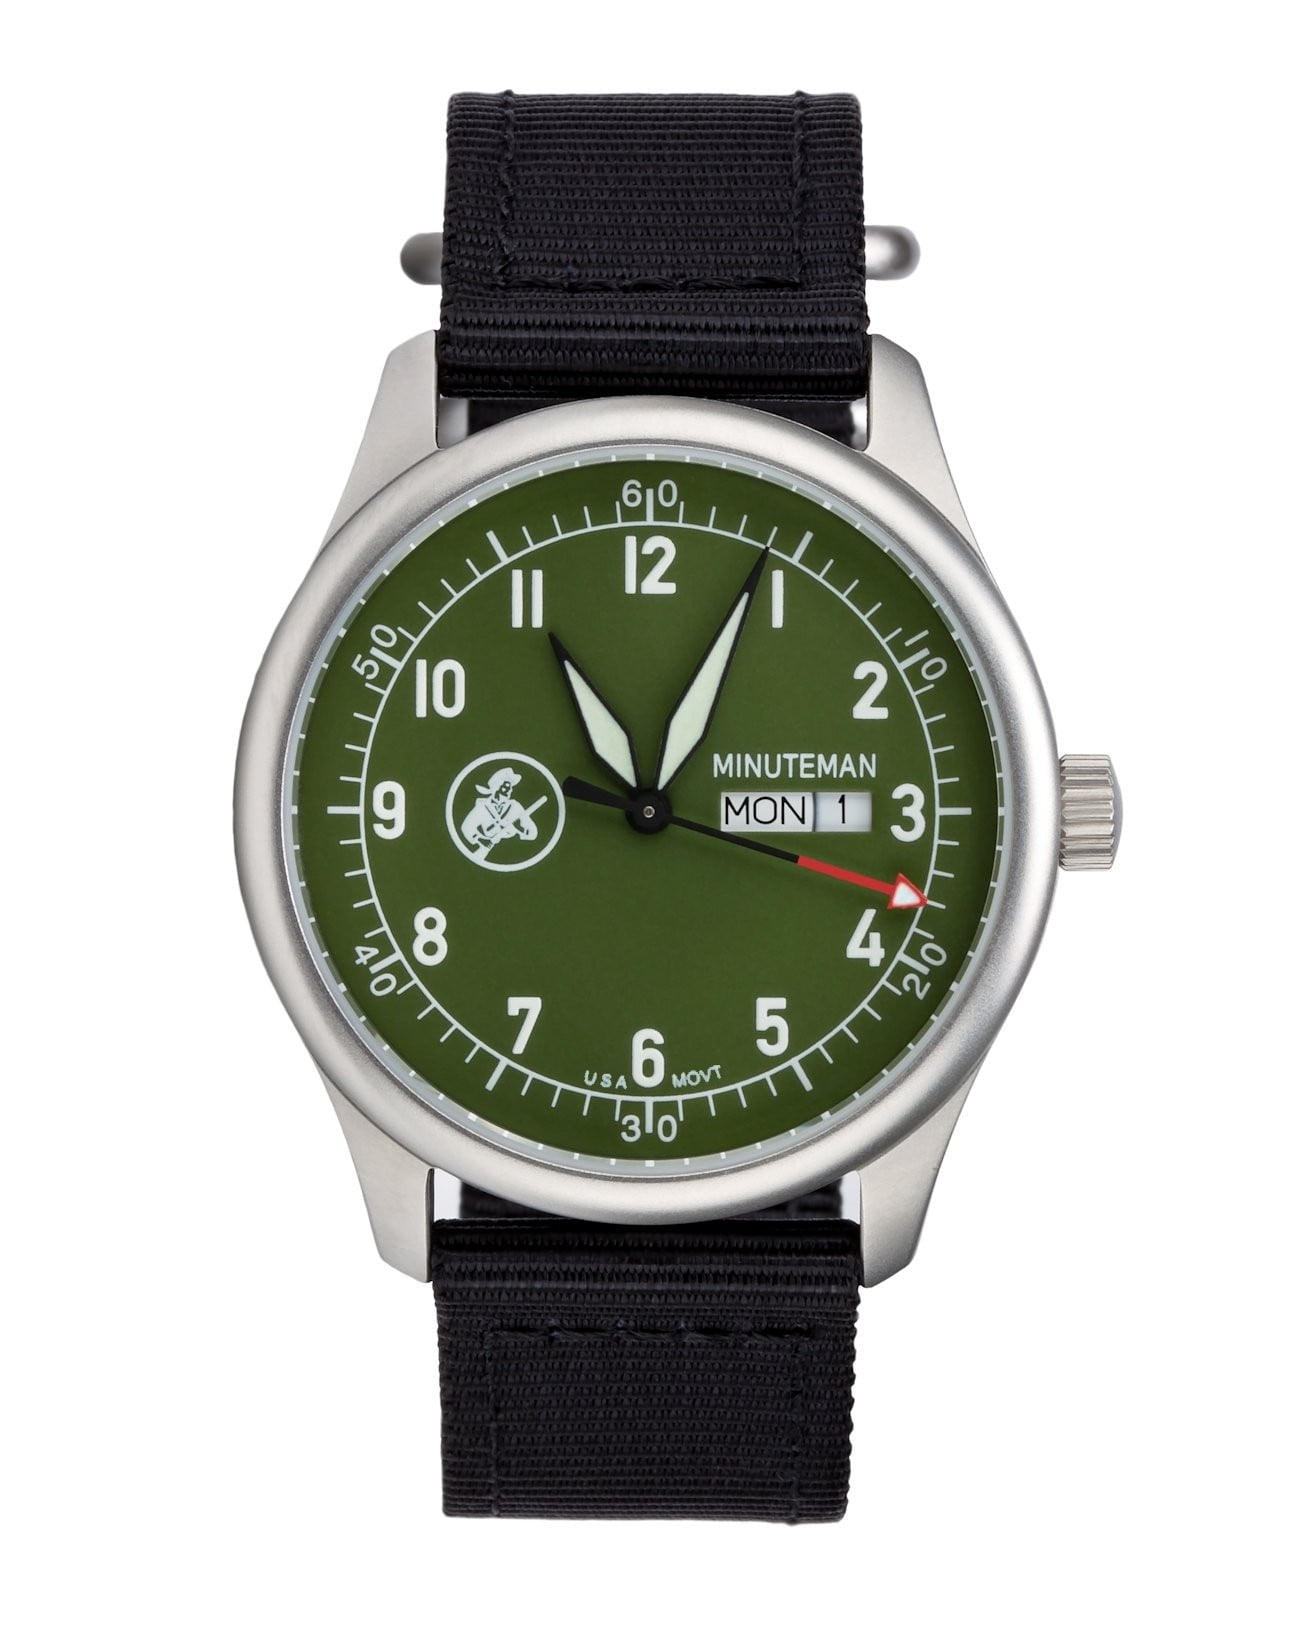 In Stock Minuteman  A11 Field Watch Powered by Ameriquartz USA Movt Black Nylon Strap OD Green Dial,minutemanwatches,Minuteman,Wrist Watch